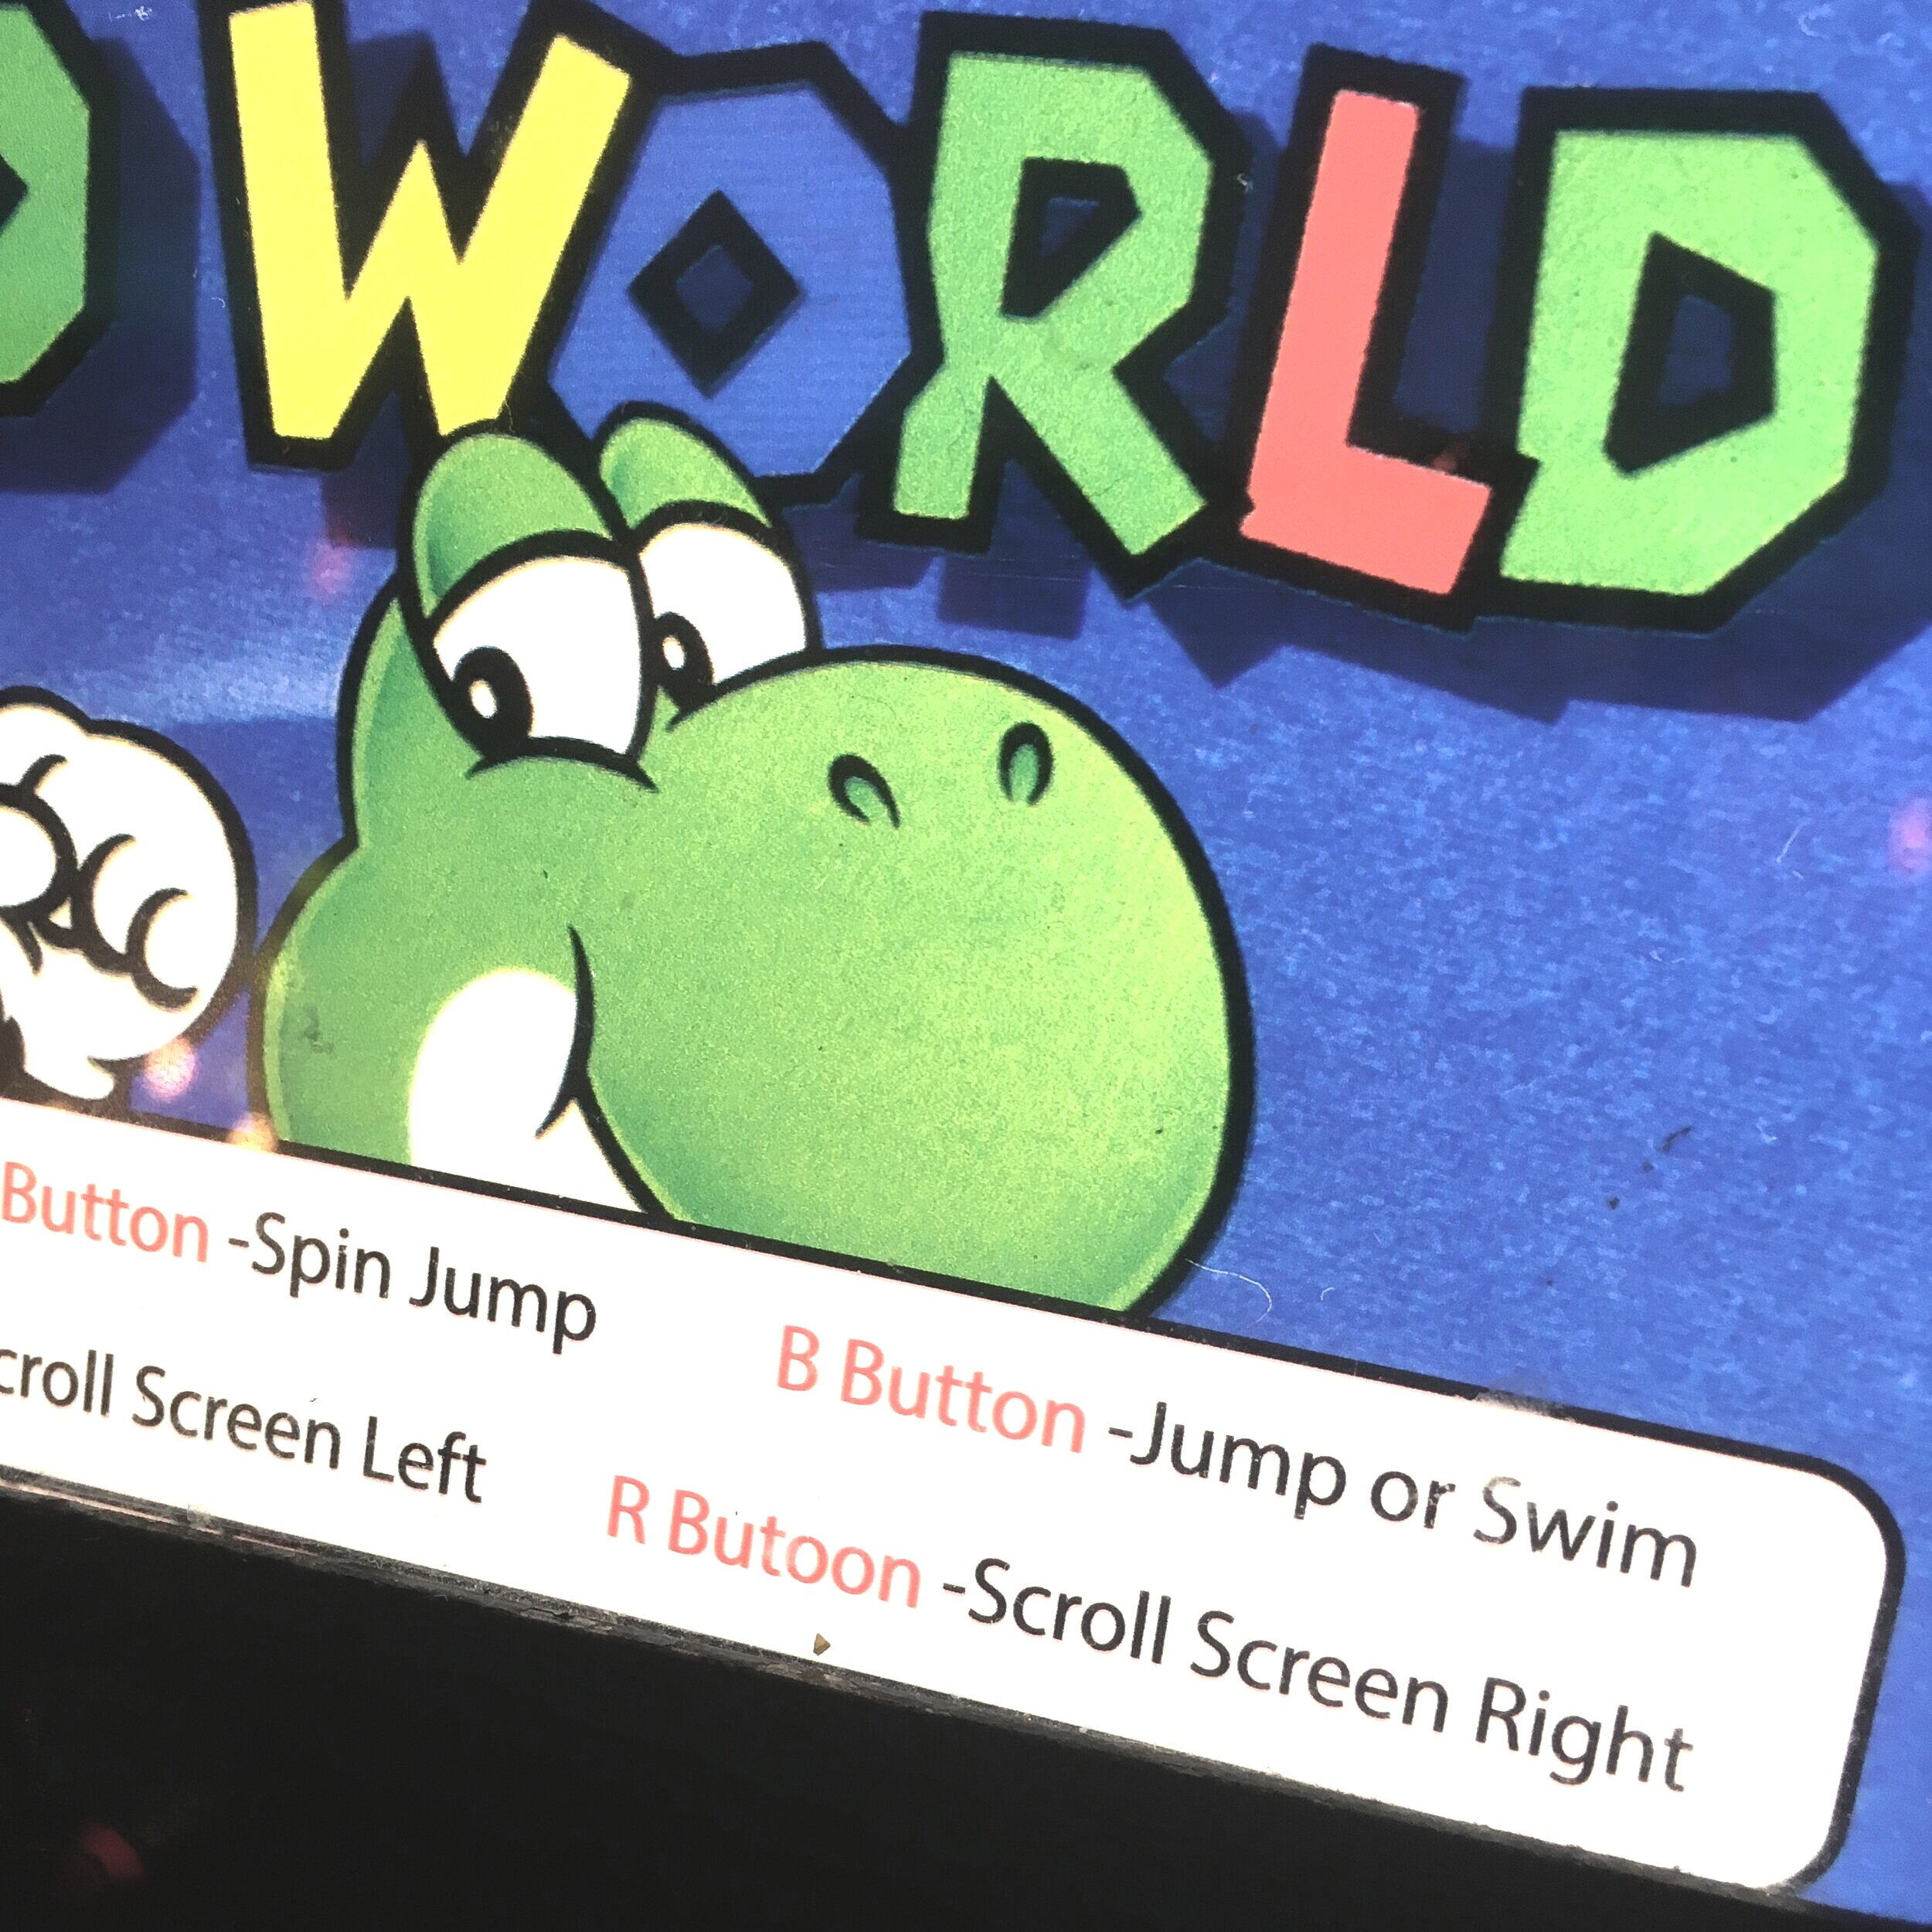 Yoshi is a terrible proof-reader.